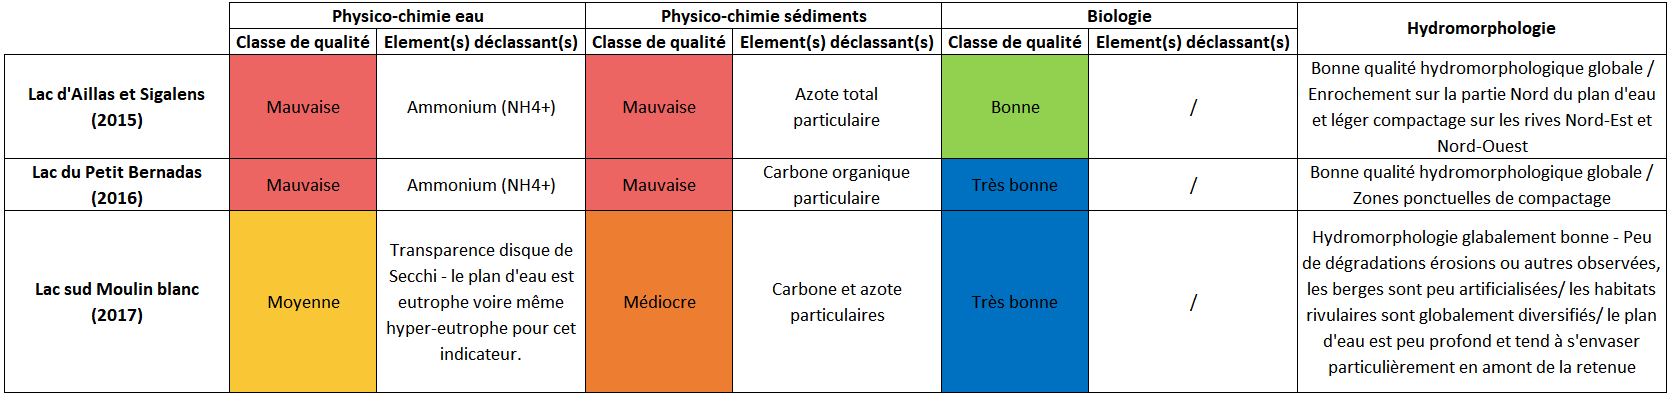 physico-chimie